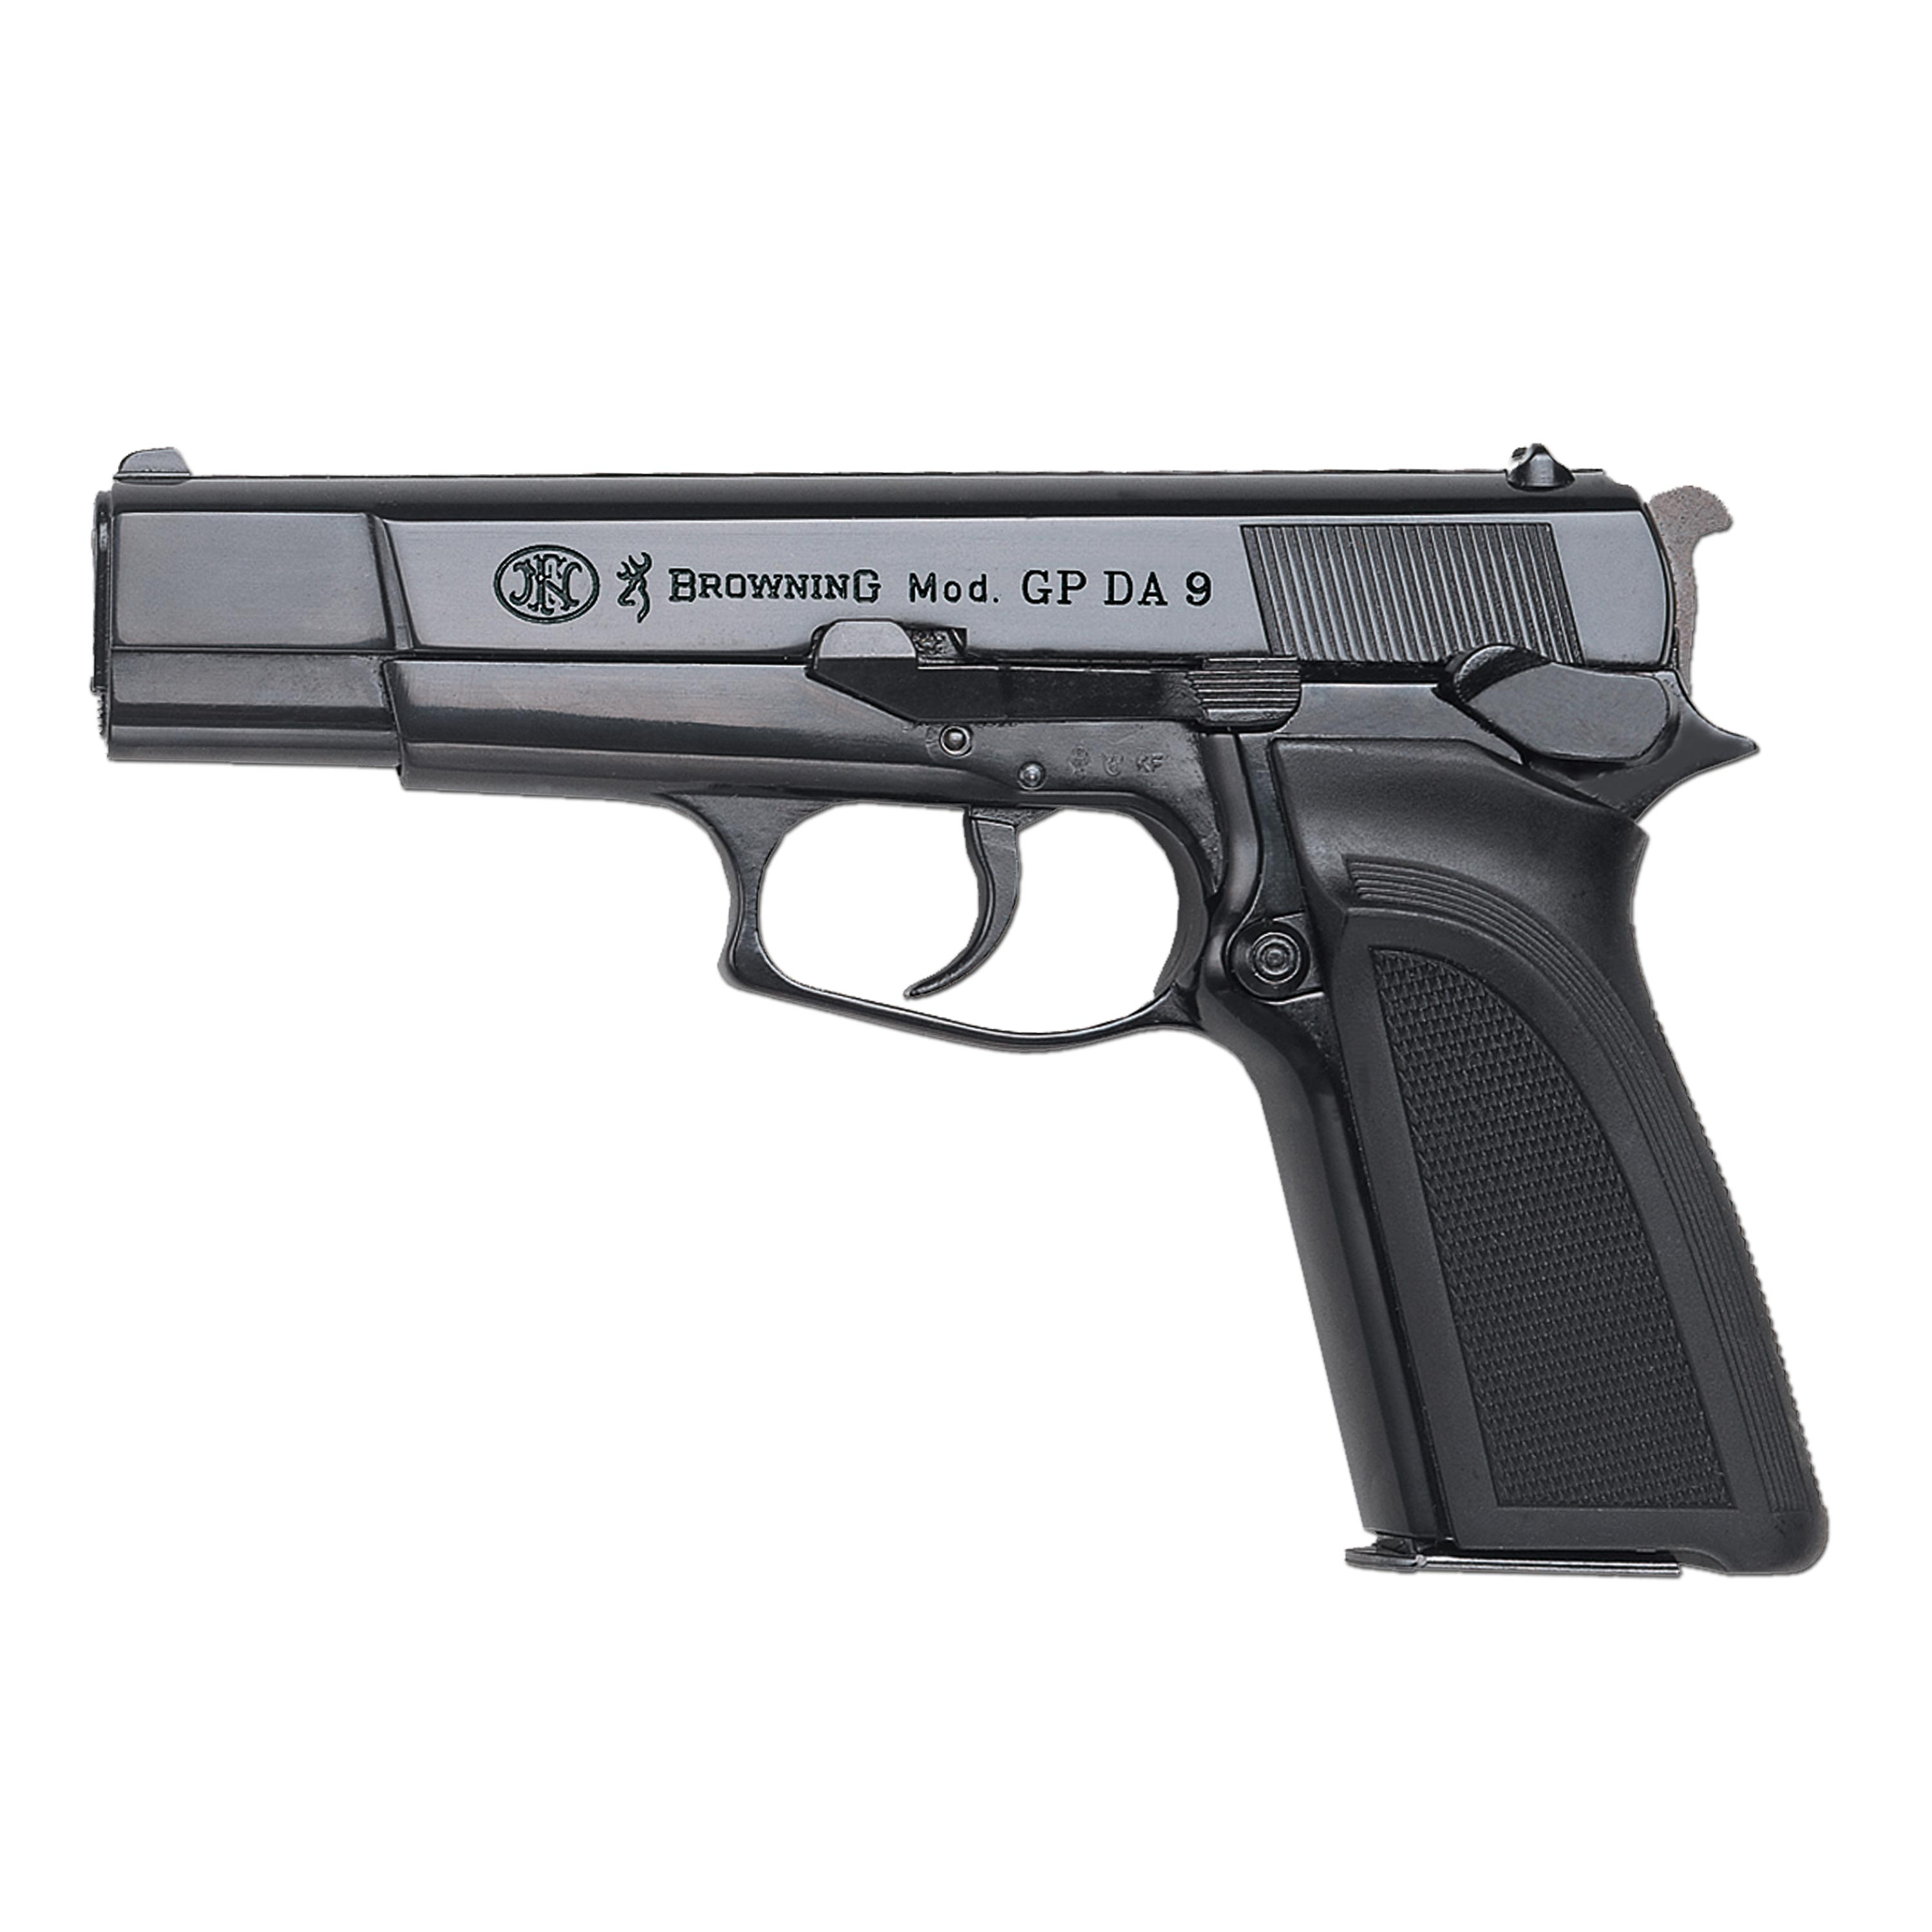 Pistol Browning GPDA9 gunmetal finished